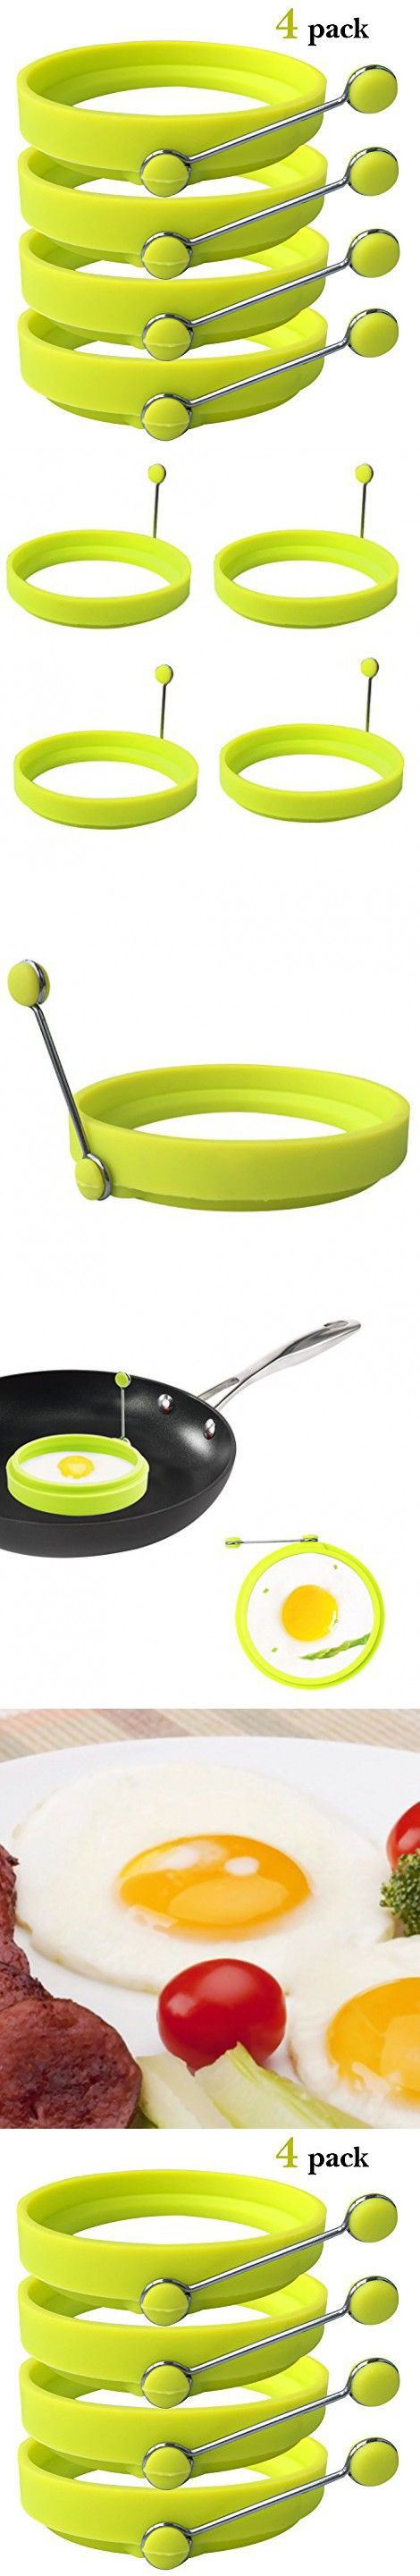 Ozera 4 Pack Nonstick Silicone Egg Ring Pancake Mold, Round Egg Rings Mold, Green